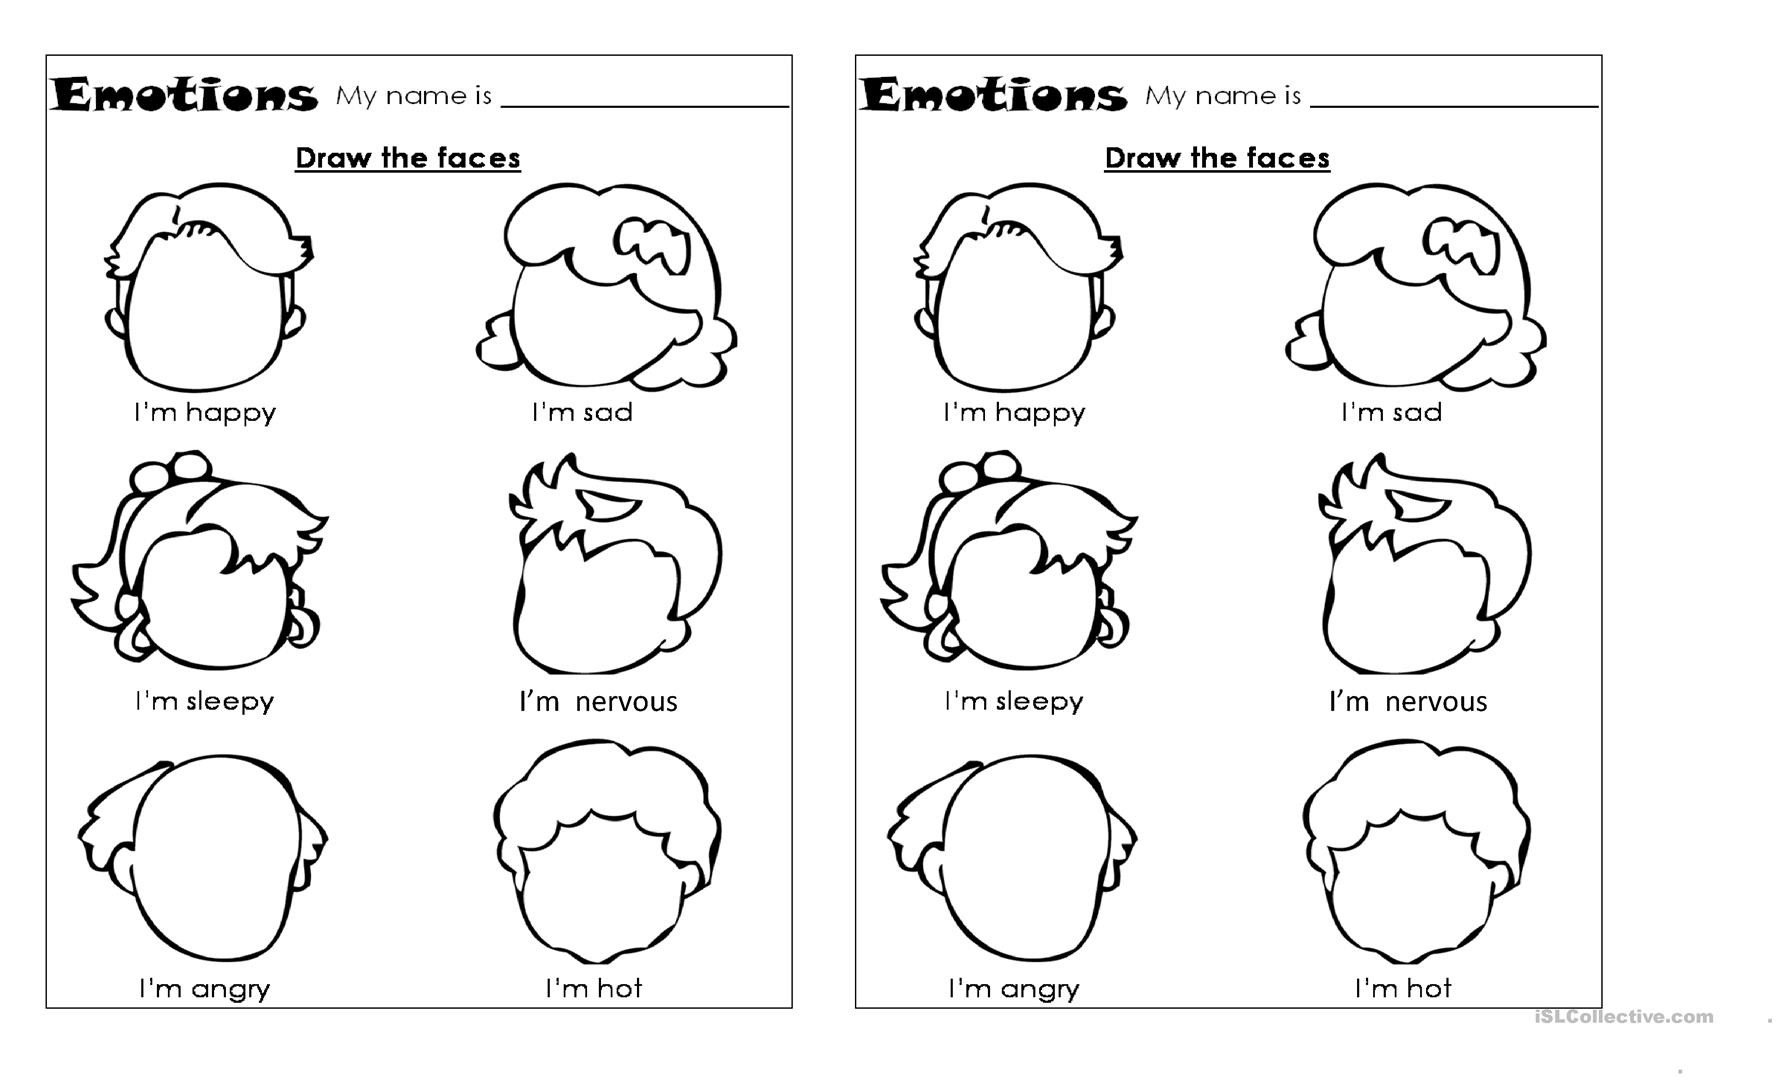 emotions worksheet free esl printable worksheets made by teachers